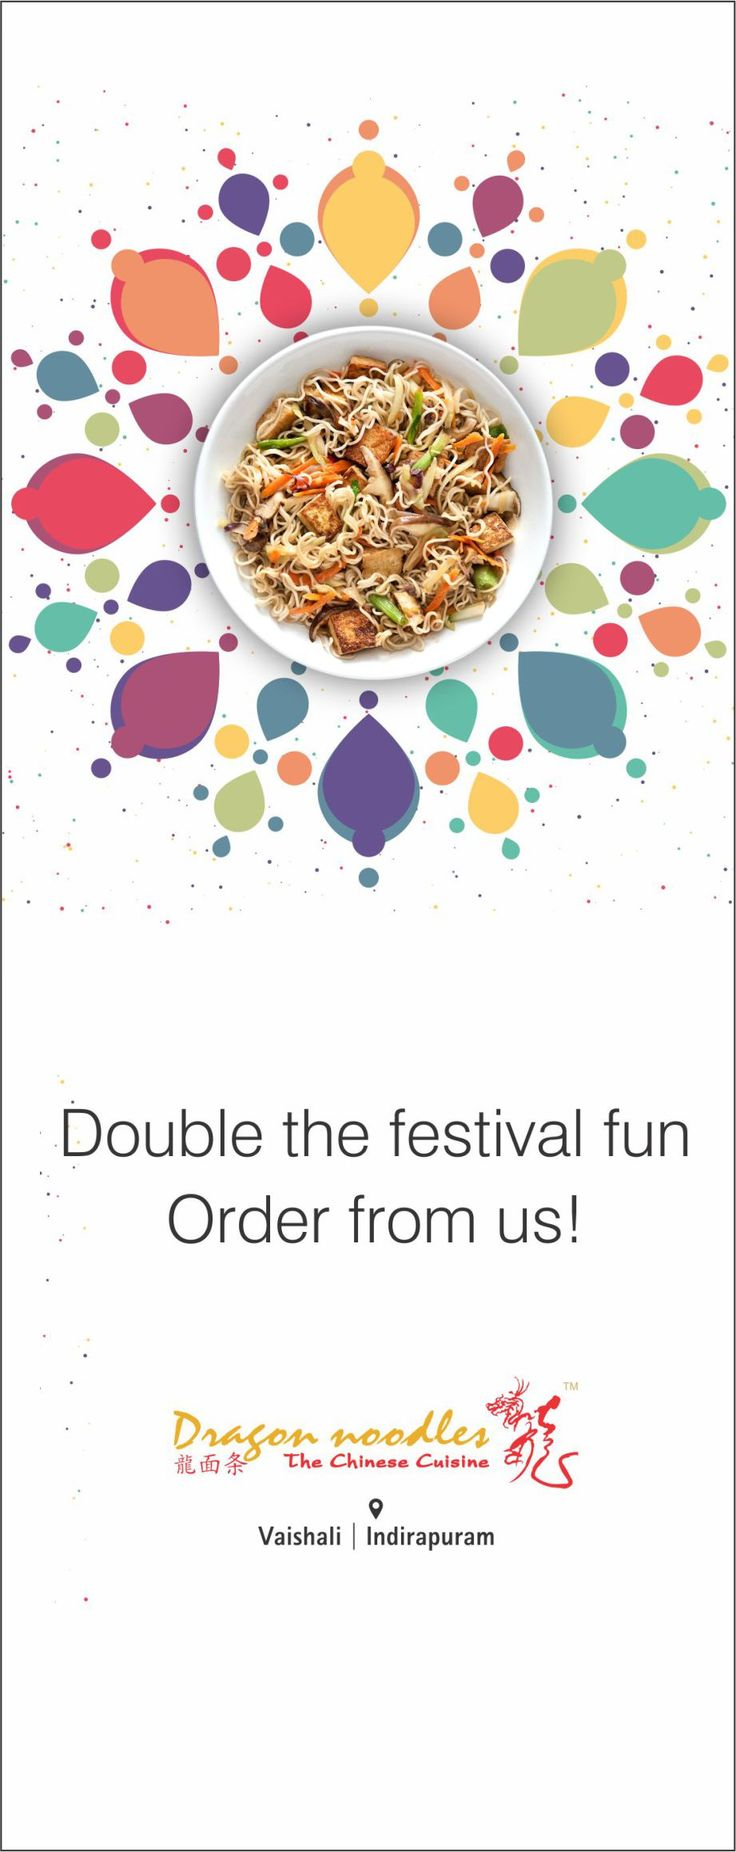 Dragon Noodles looks forward to add on to the festivity through a variety of delicious food delivered right at your doorstep. #DragonNoodles #Chinese #Food #Ghaziabad #foodies